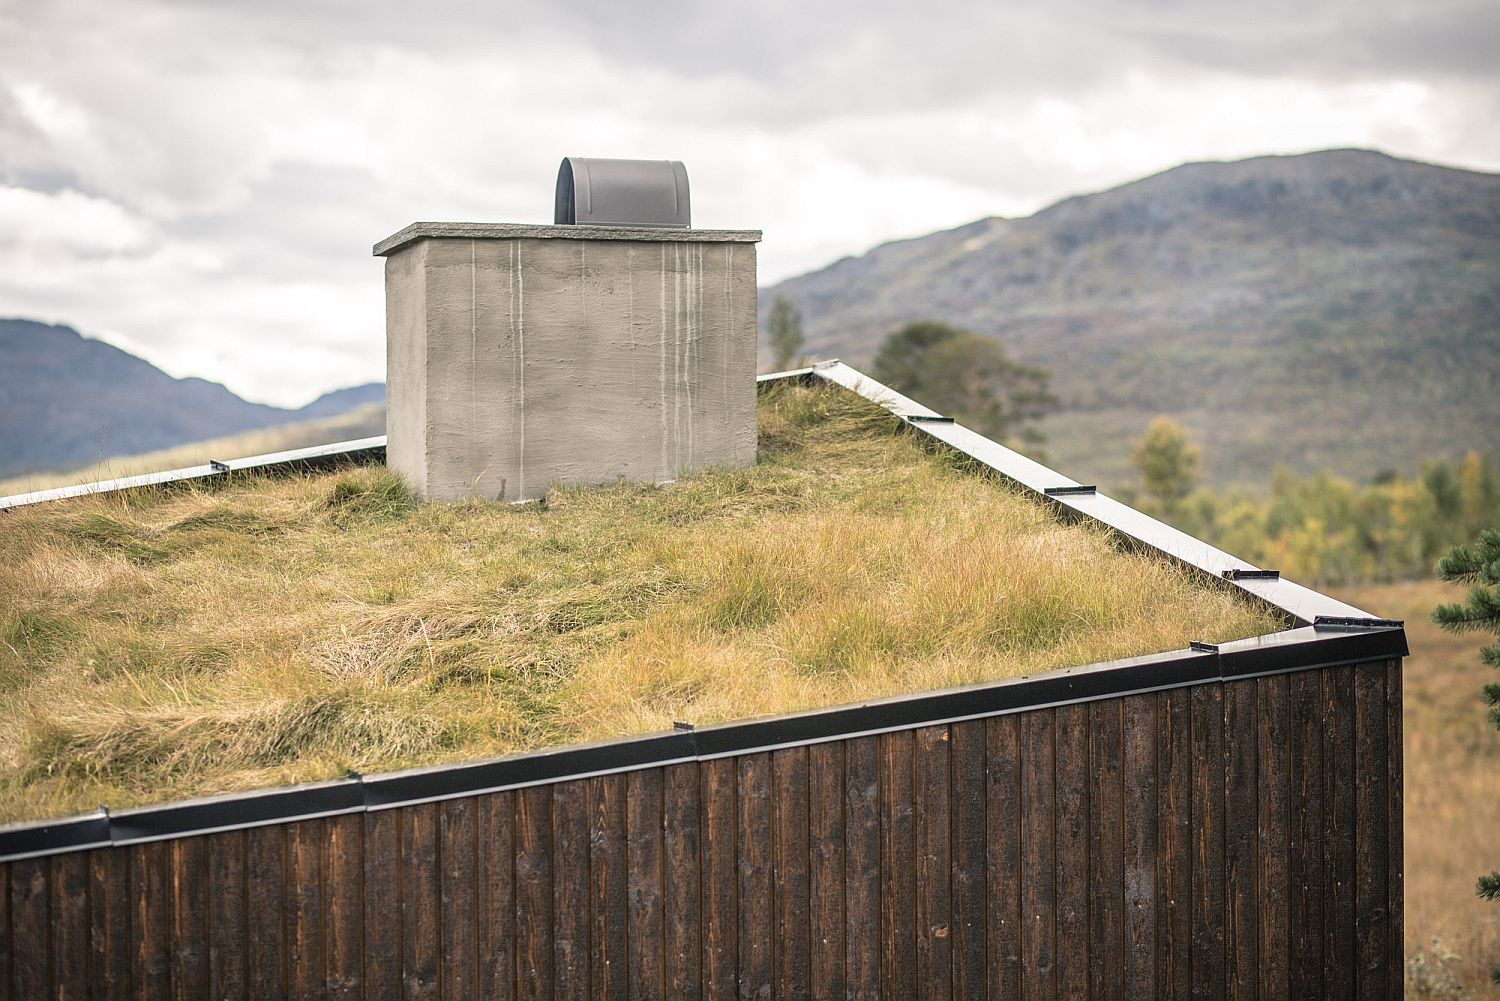 Green roof of Viewpoint Granasjøen allows it to blend in with the landscape